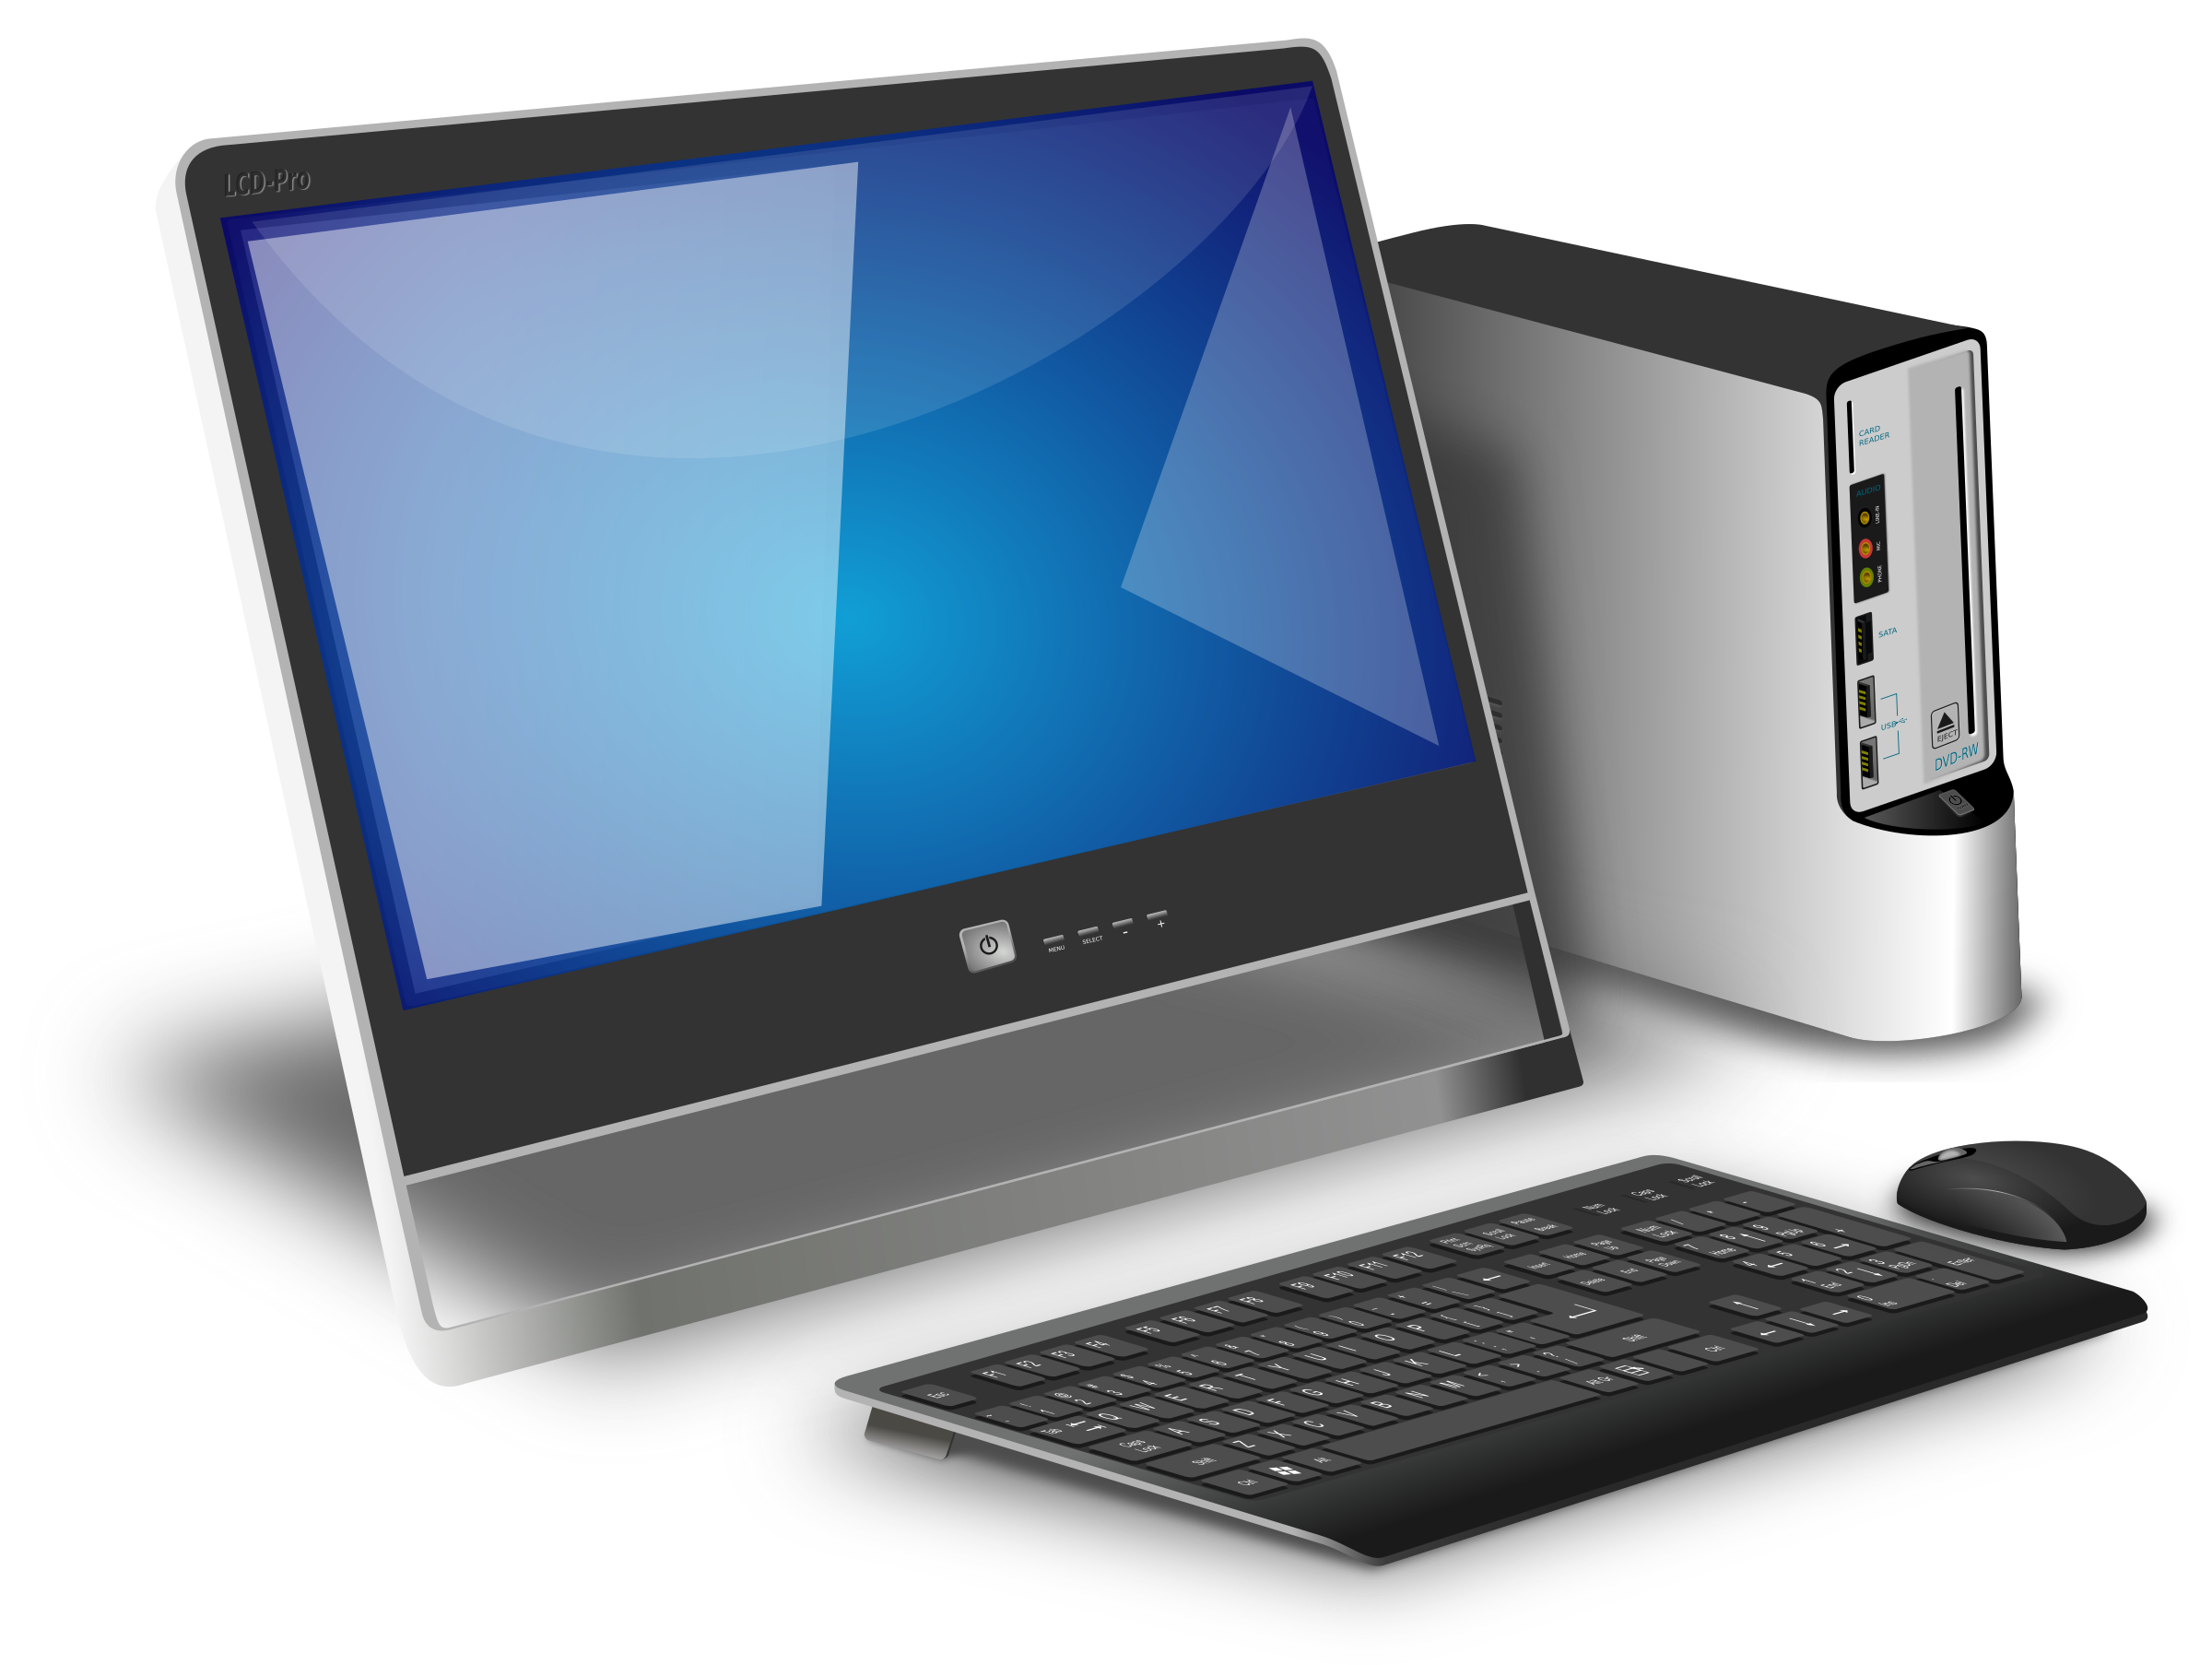 Computer PC free PNG Download #45251.